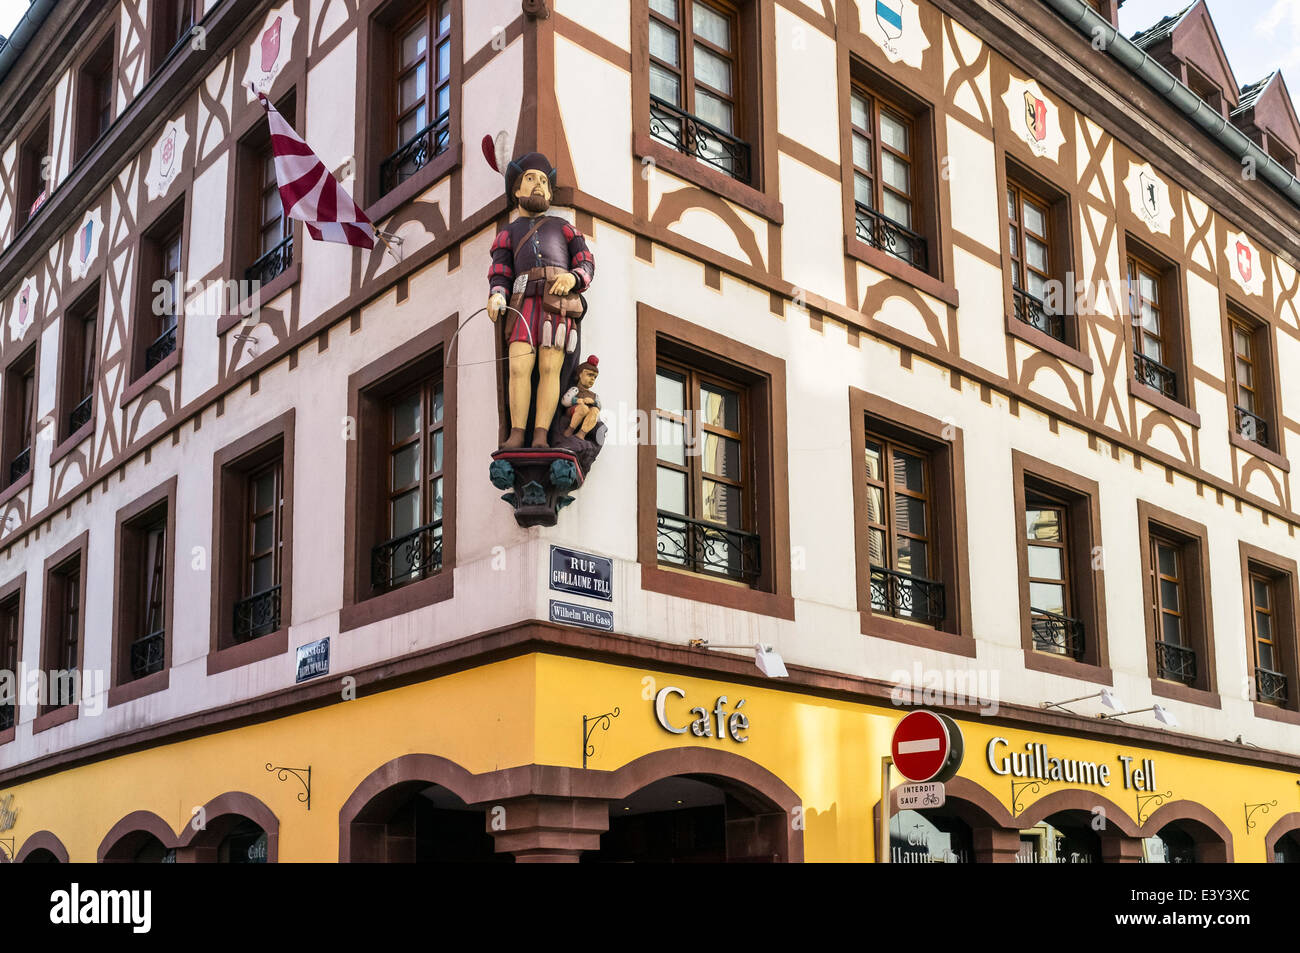 guillaume tell cafe mulhouse alsace france stock photo 71281236 alamy. Black Bedroom Furniture Sets. Home Design Ideas